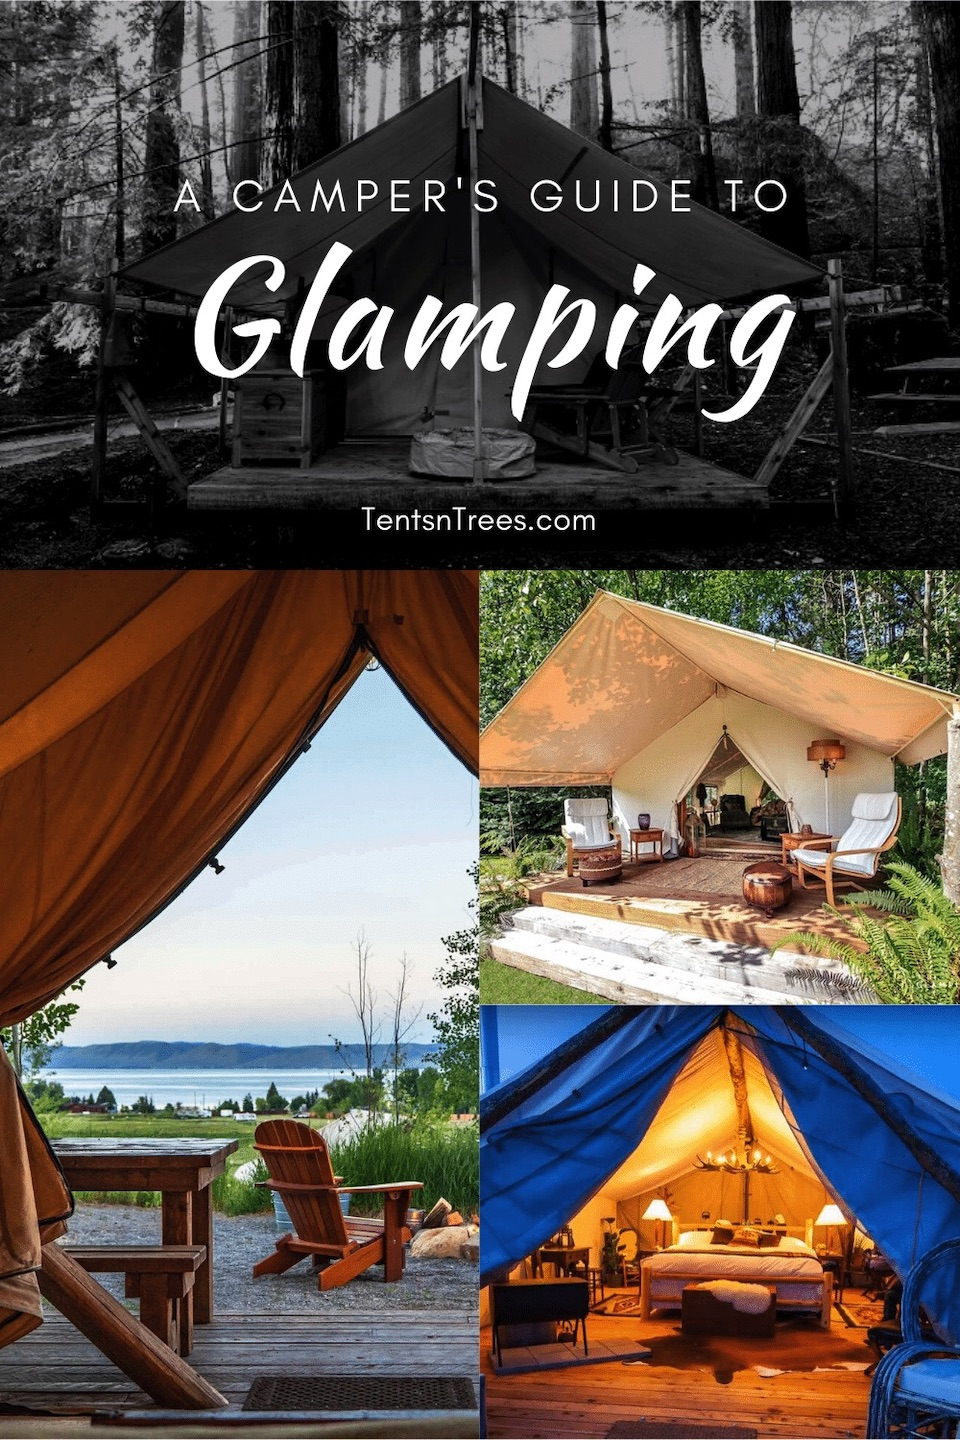 Tents n Trees: Camper's Guide to Glamping